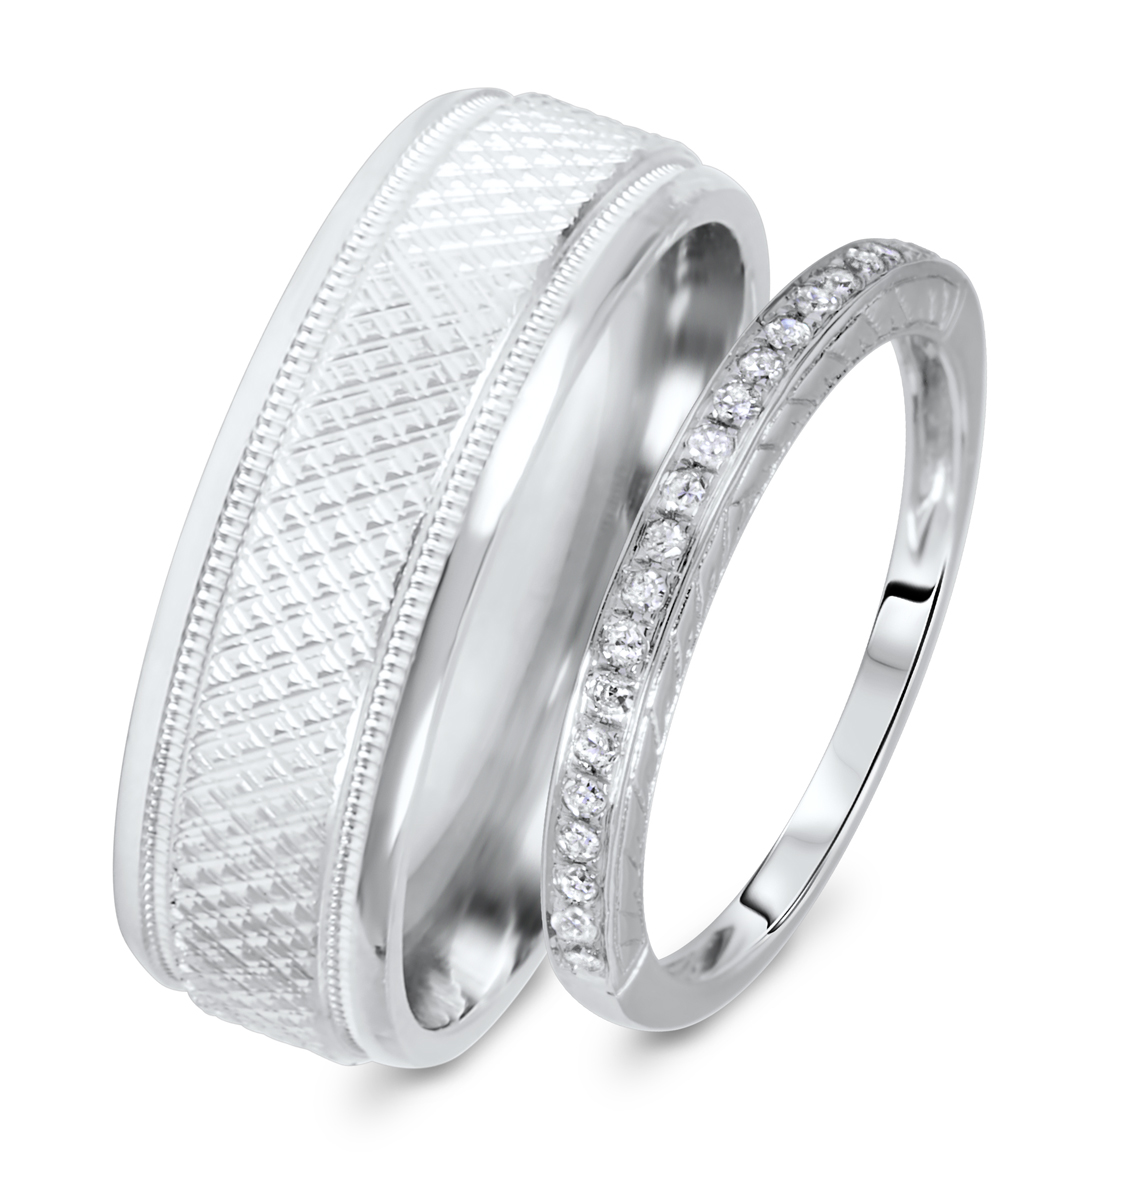 3 budget his and hers wedding ring sets wedding ideas for Wedding rings his and hers sets